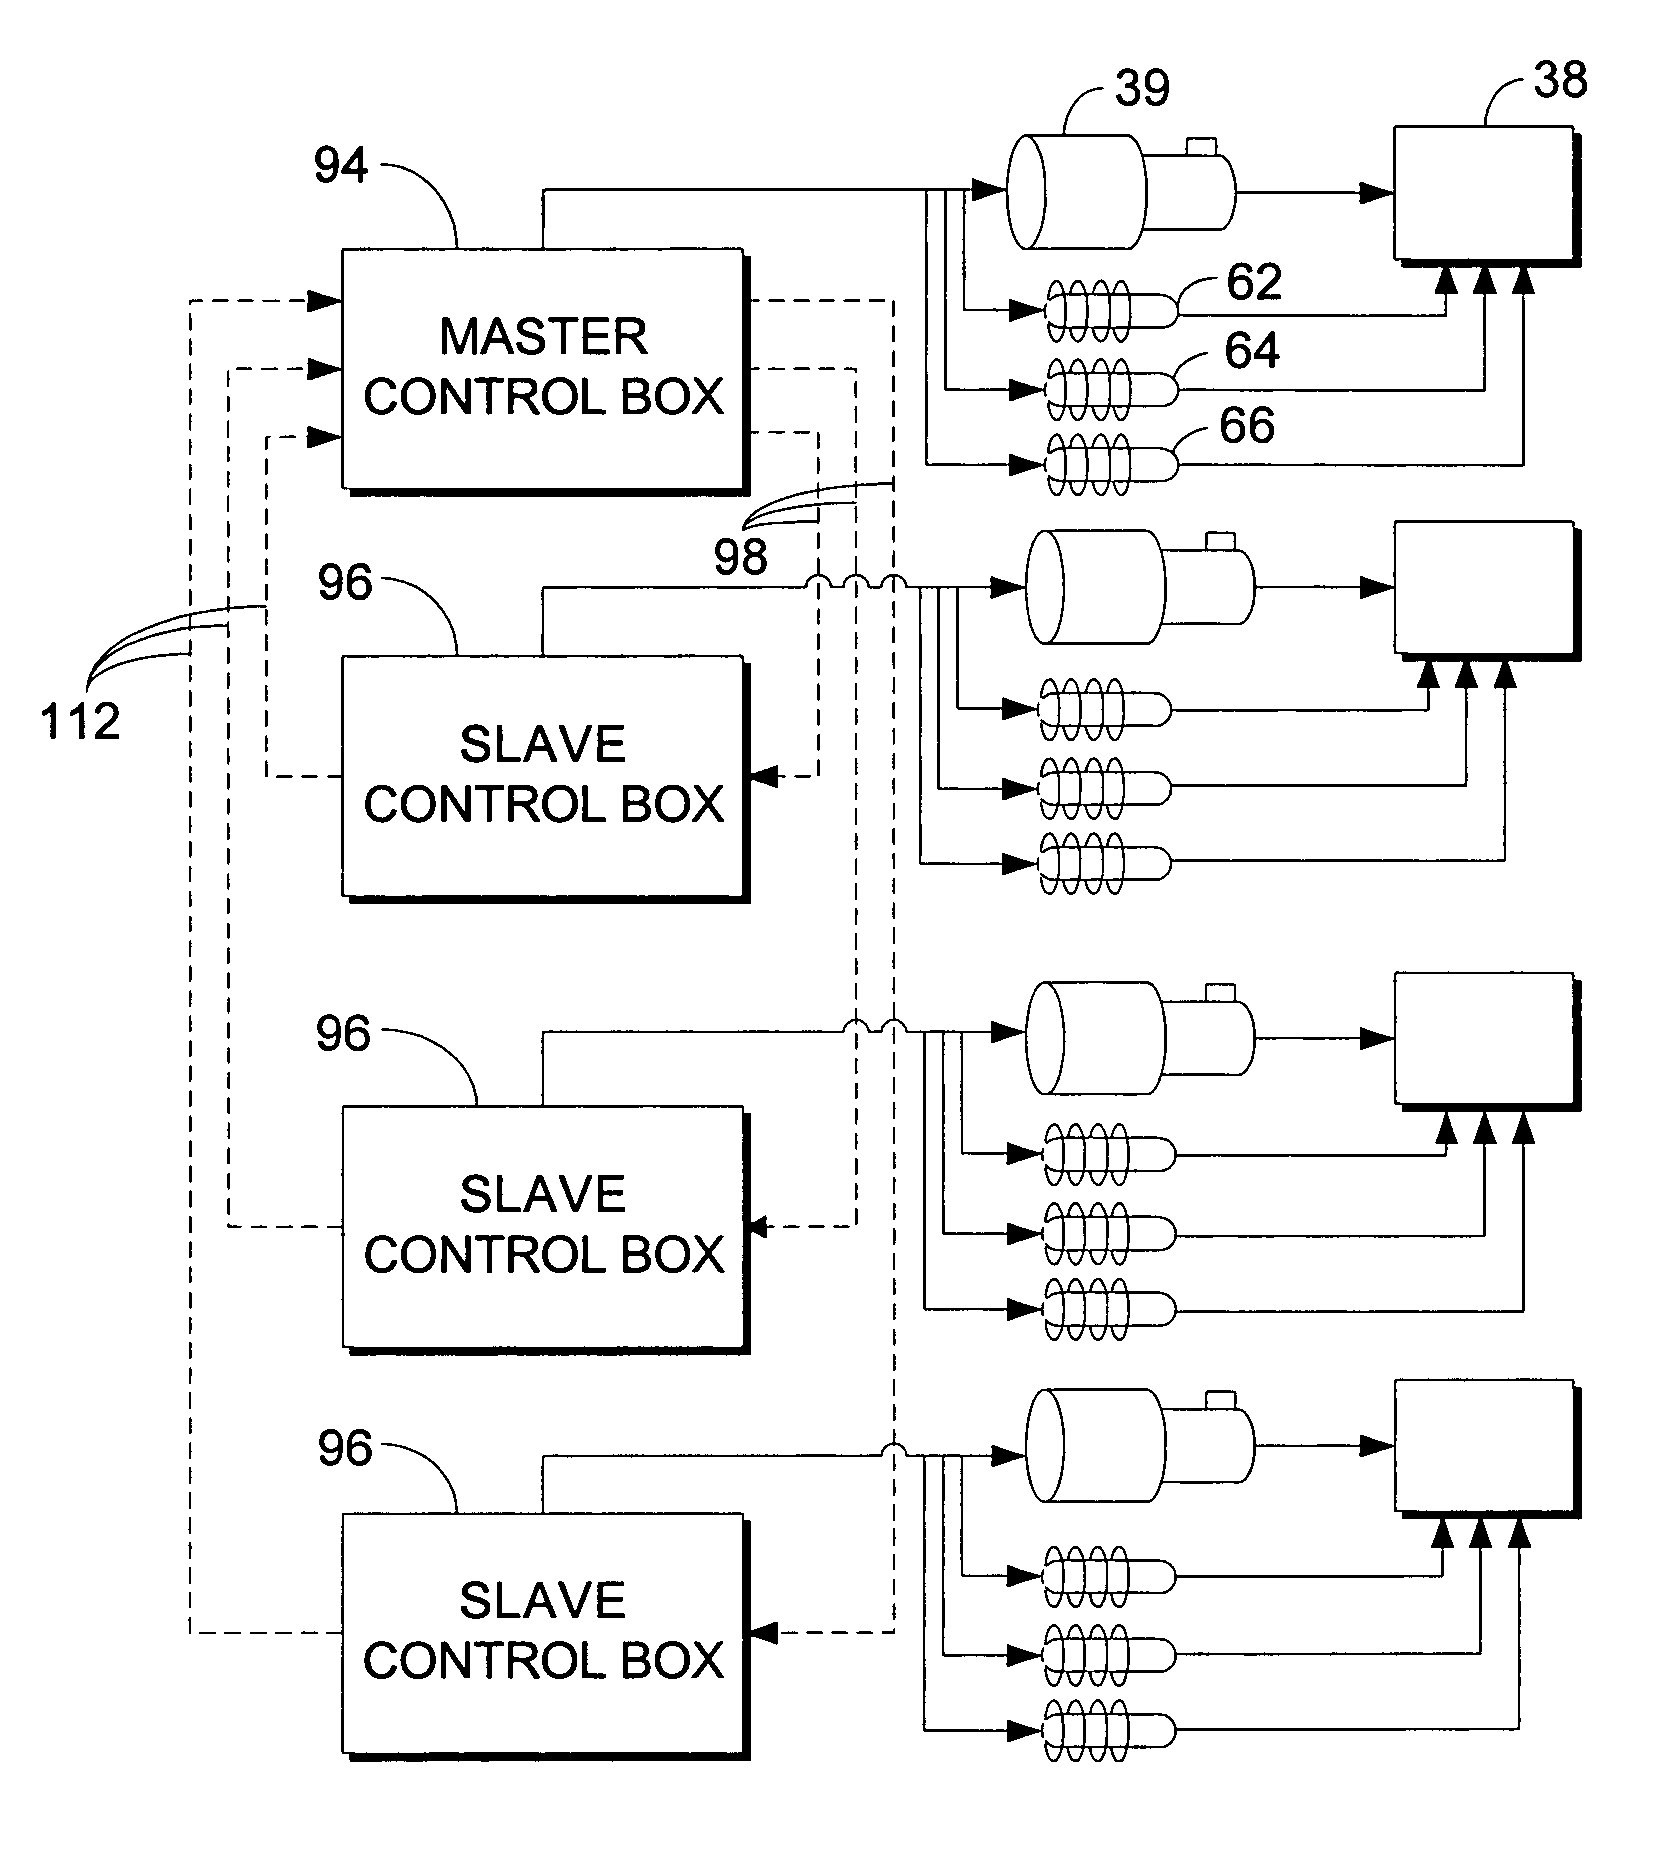 wiring diagram for a 1997 fleetwood motorhome wiring discover kwikee lci leveling system wiring diagram wiring diagram 1983 ch ion together fleetwood pace arrow